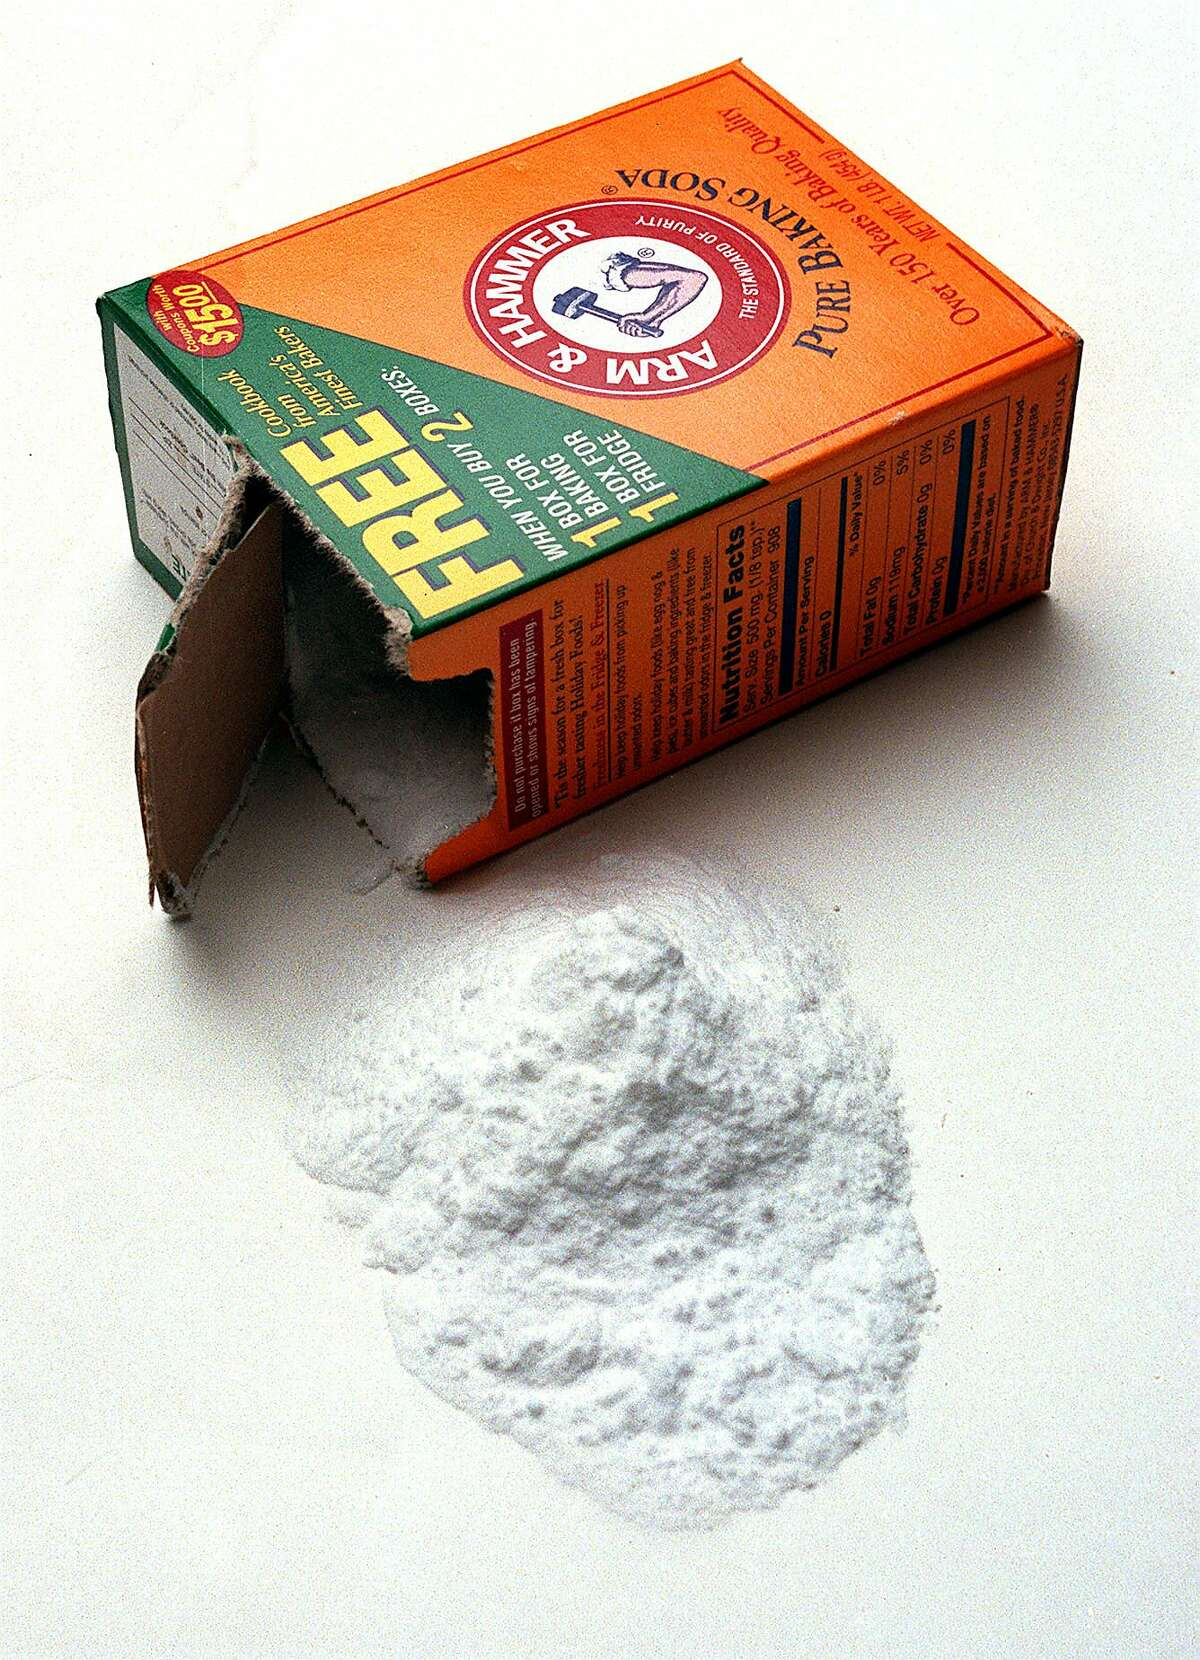 Sprinkle baking soda on funky rugs or upholstery, leave it for a few hours (or overnight), then vacuum it up.